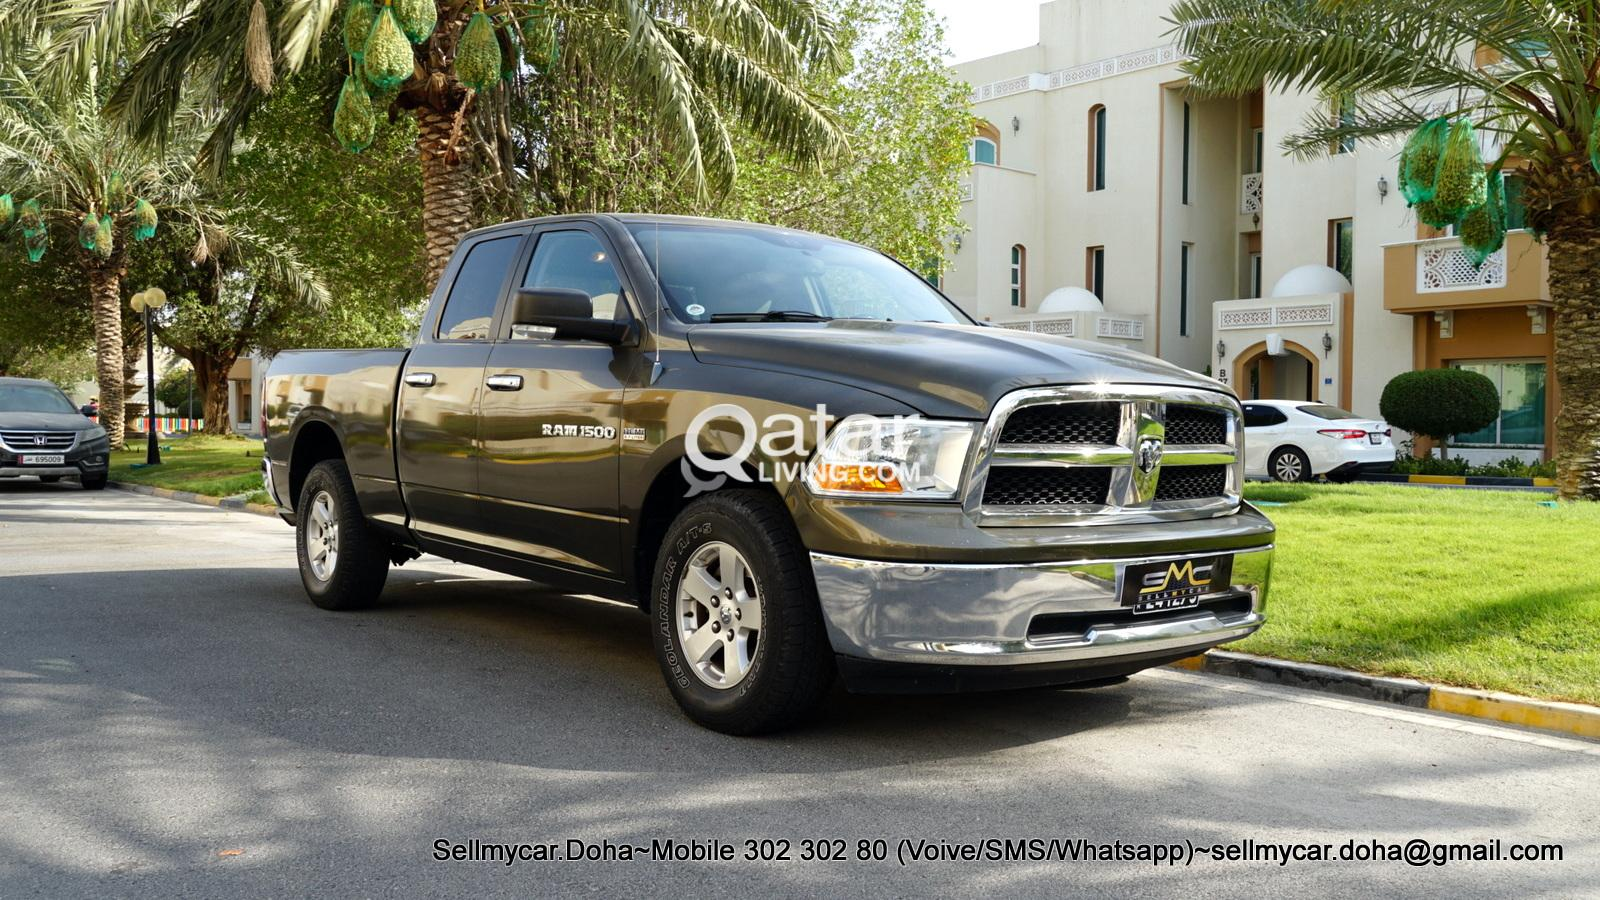 2012 Ram 1500 SLT Crew Cab 4X4 (More Photos Available Upon Request)